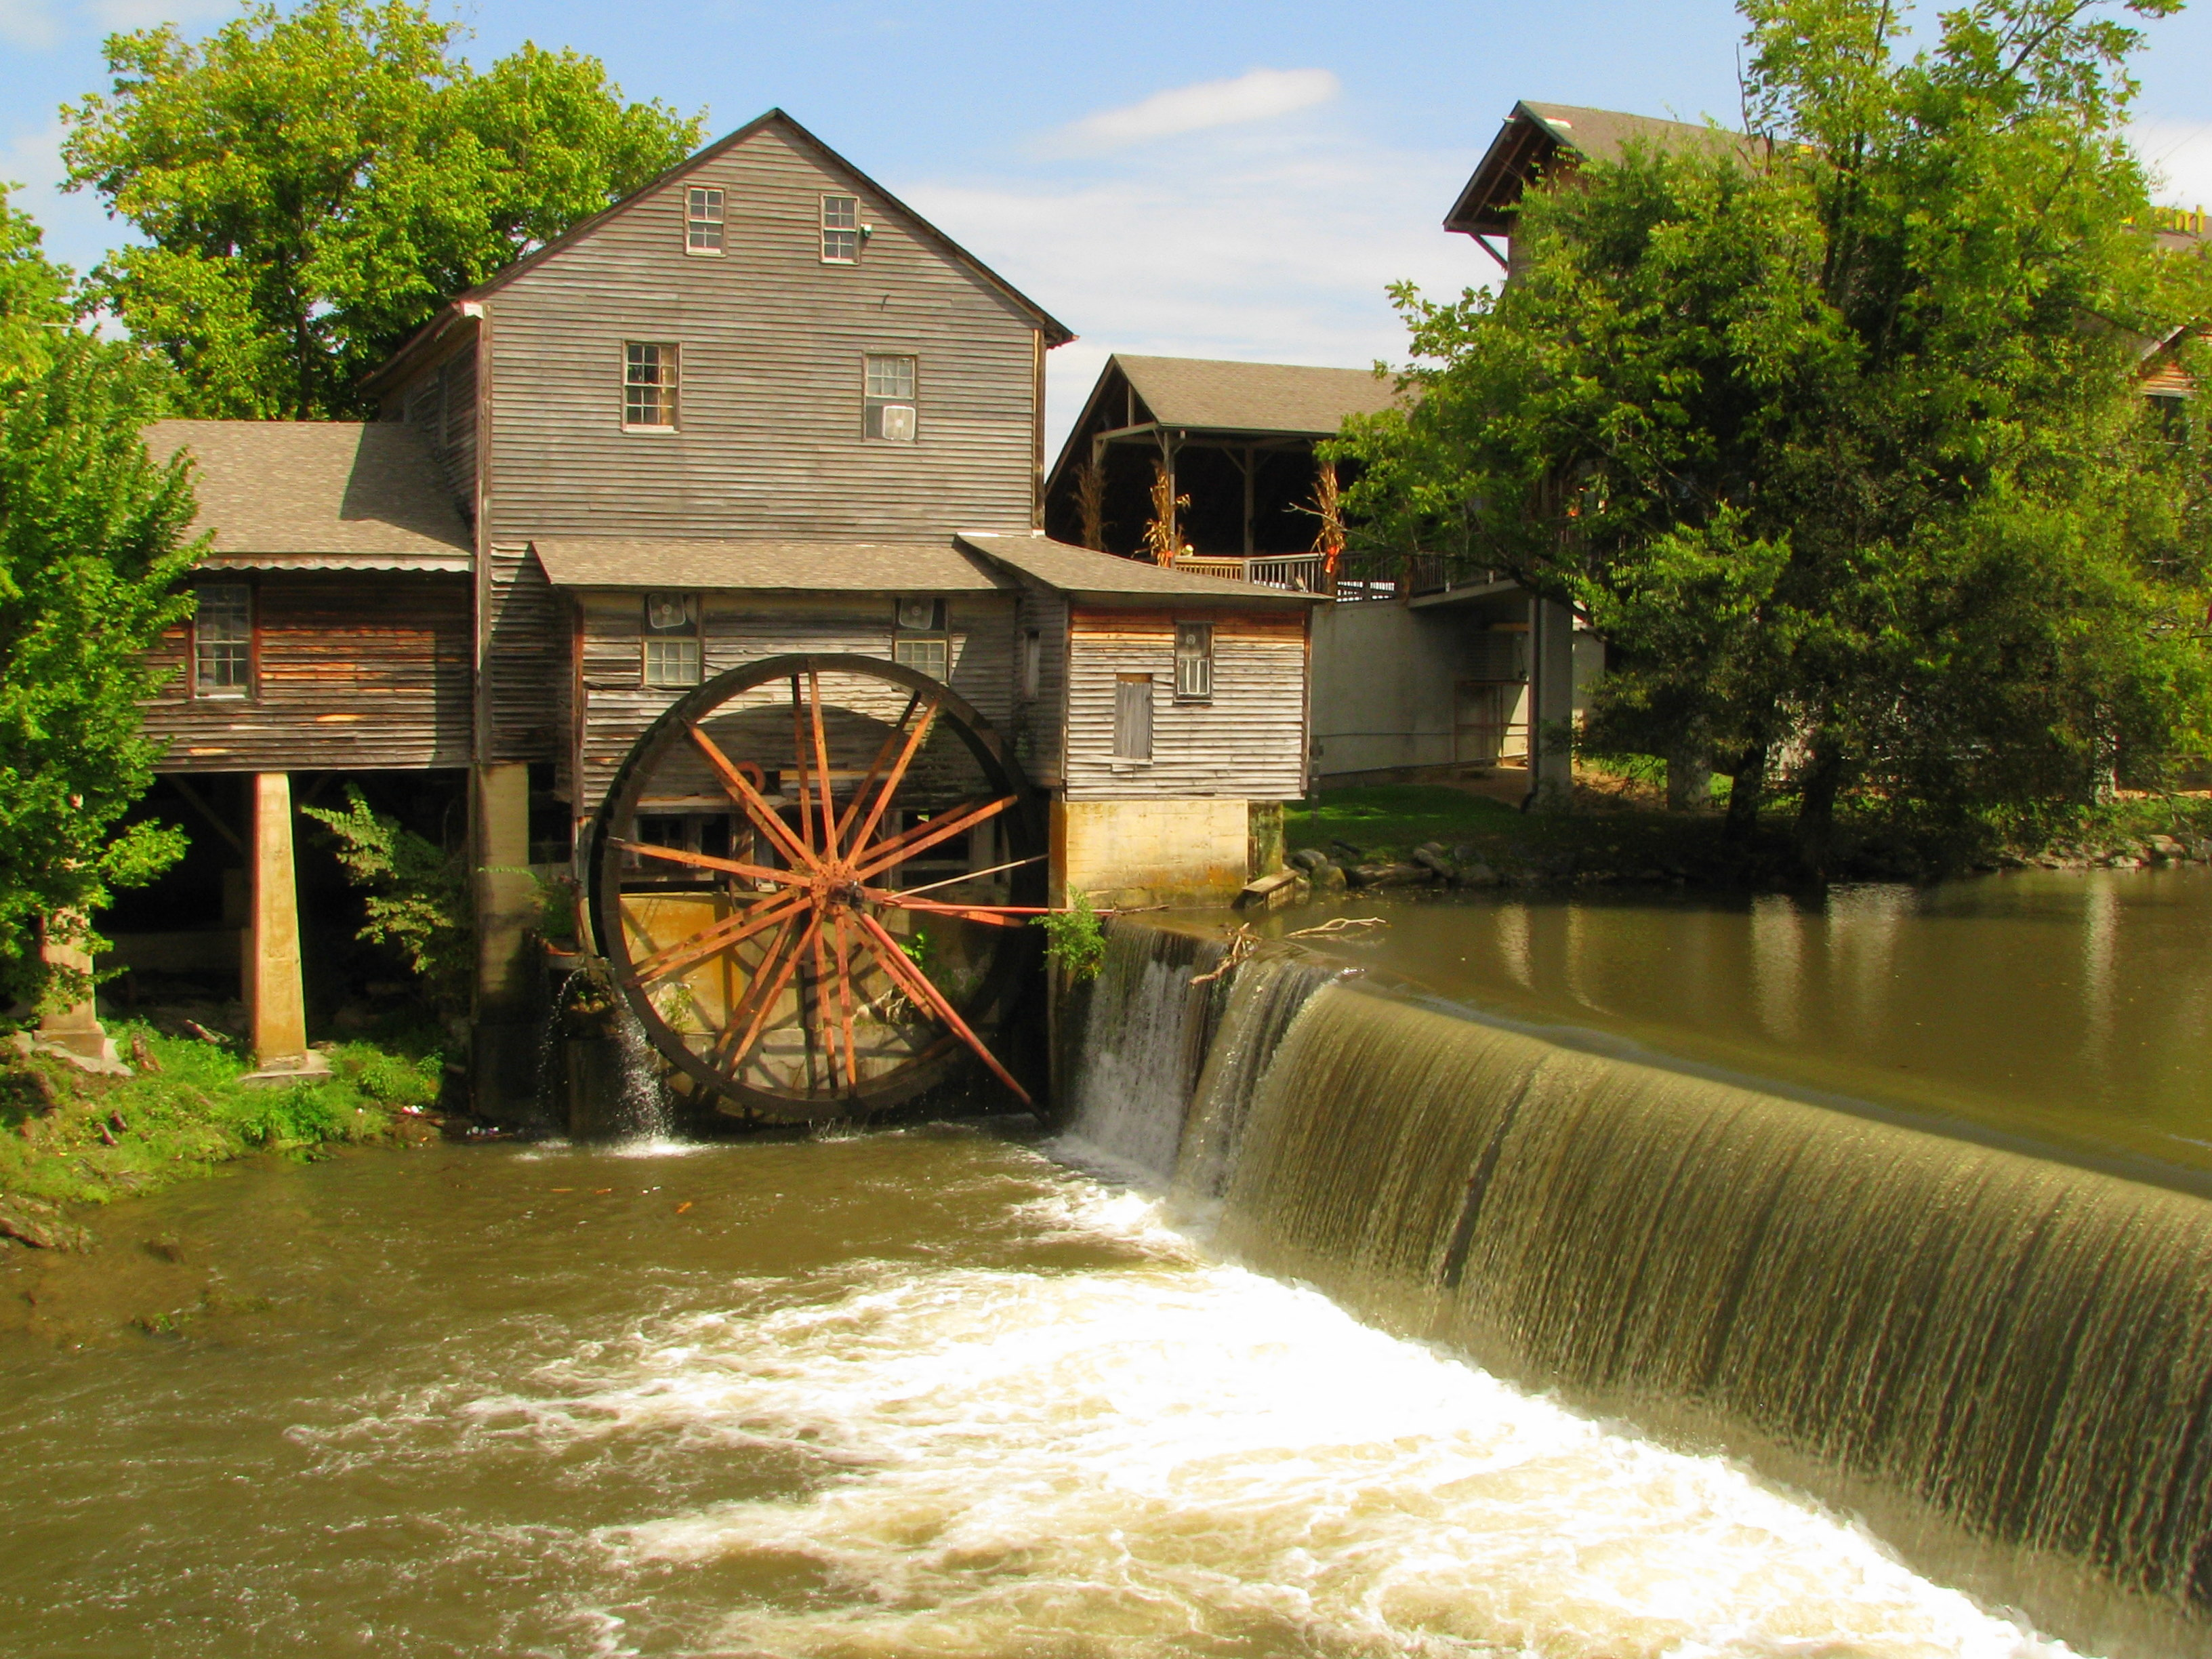 The Old Mill - Pigeon Forge (version 2)